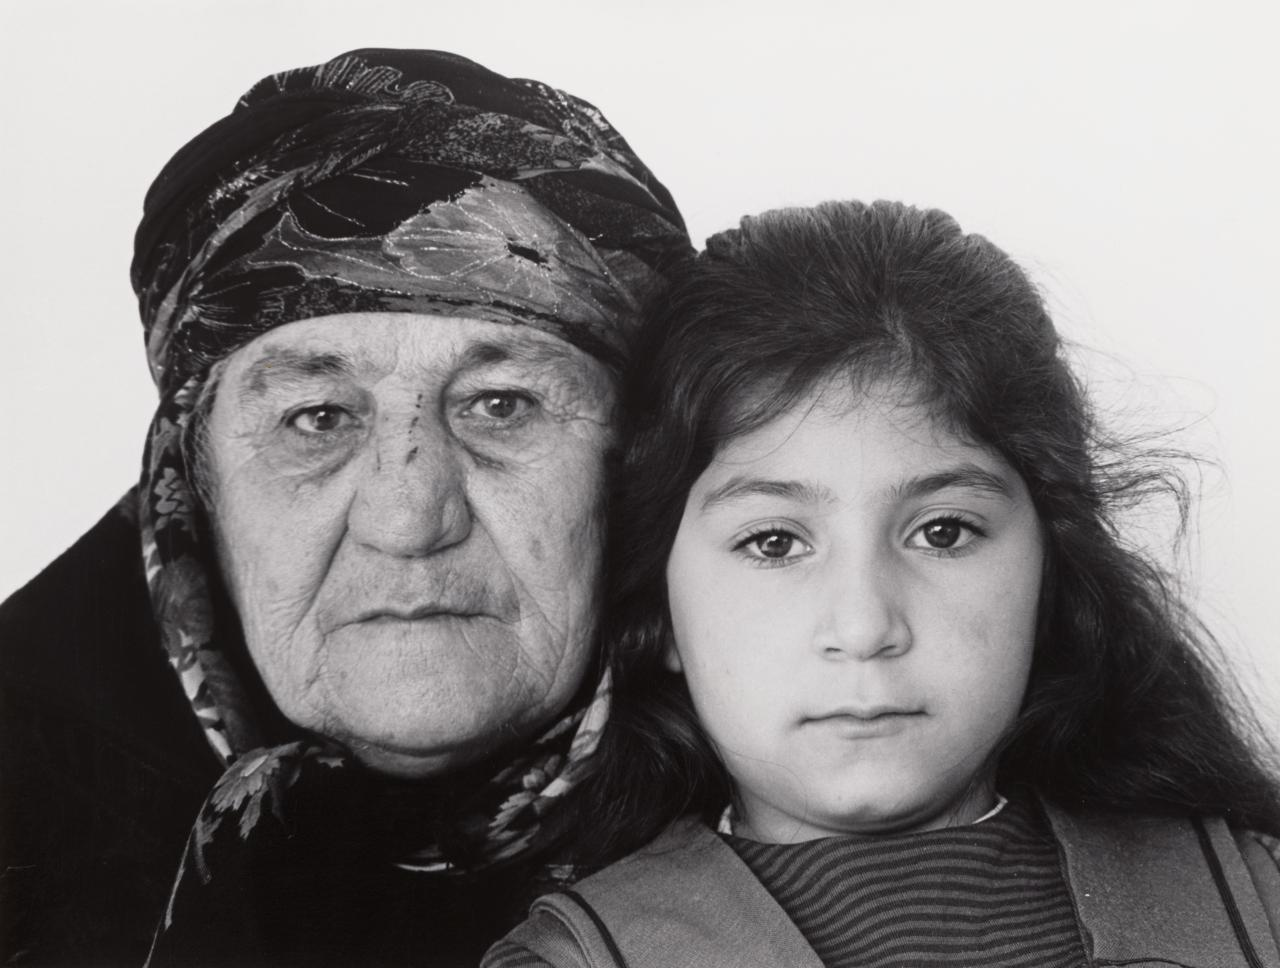 Zühre Yildirim from Turkey with grand-daughter Nurahan Gundogdu, born in Australia. De Carle Street, Brunswick